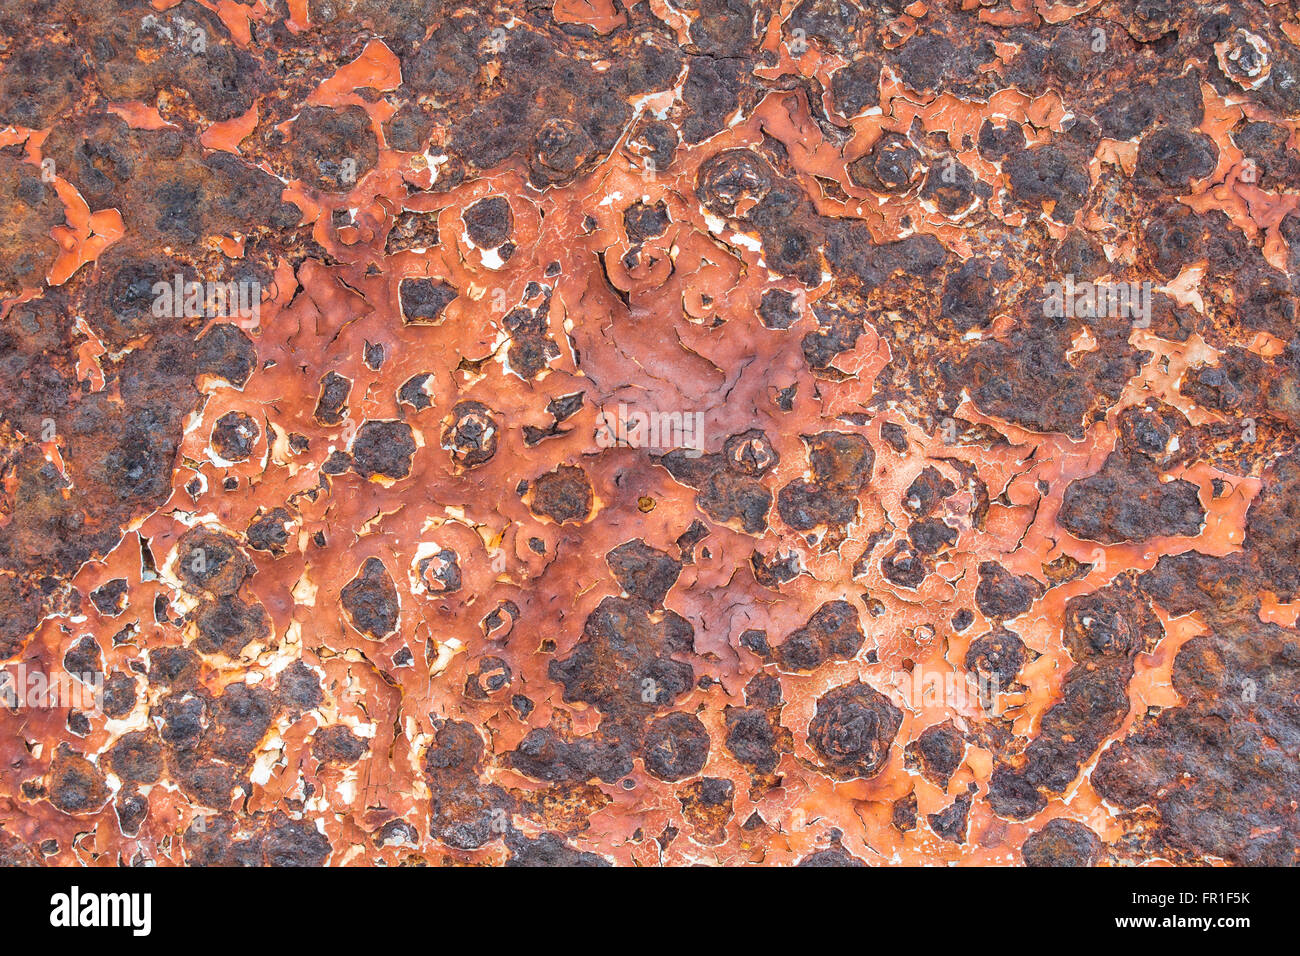 Rust on metal surfaces - Stock Image